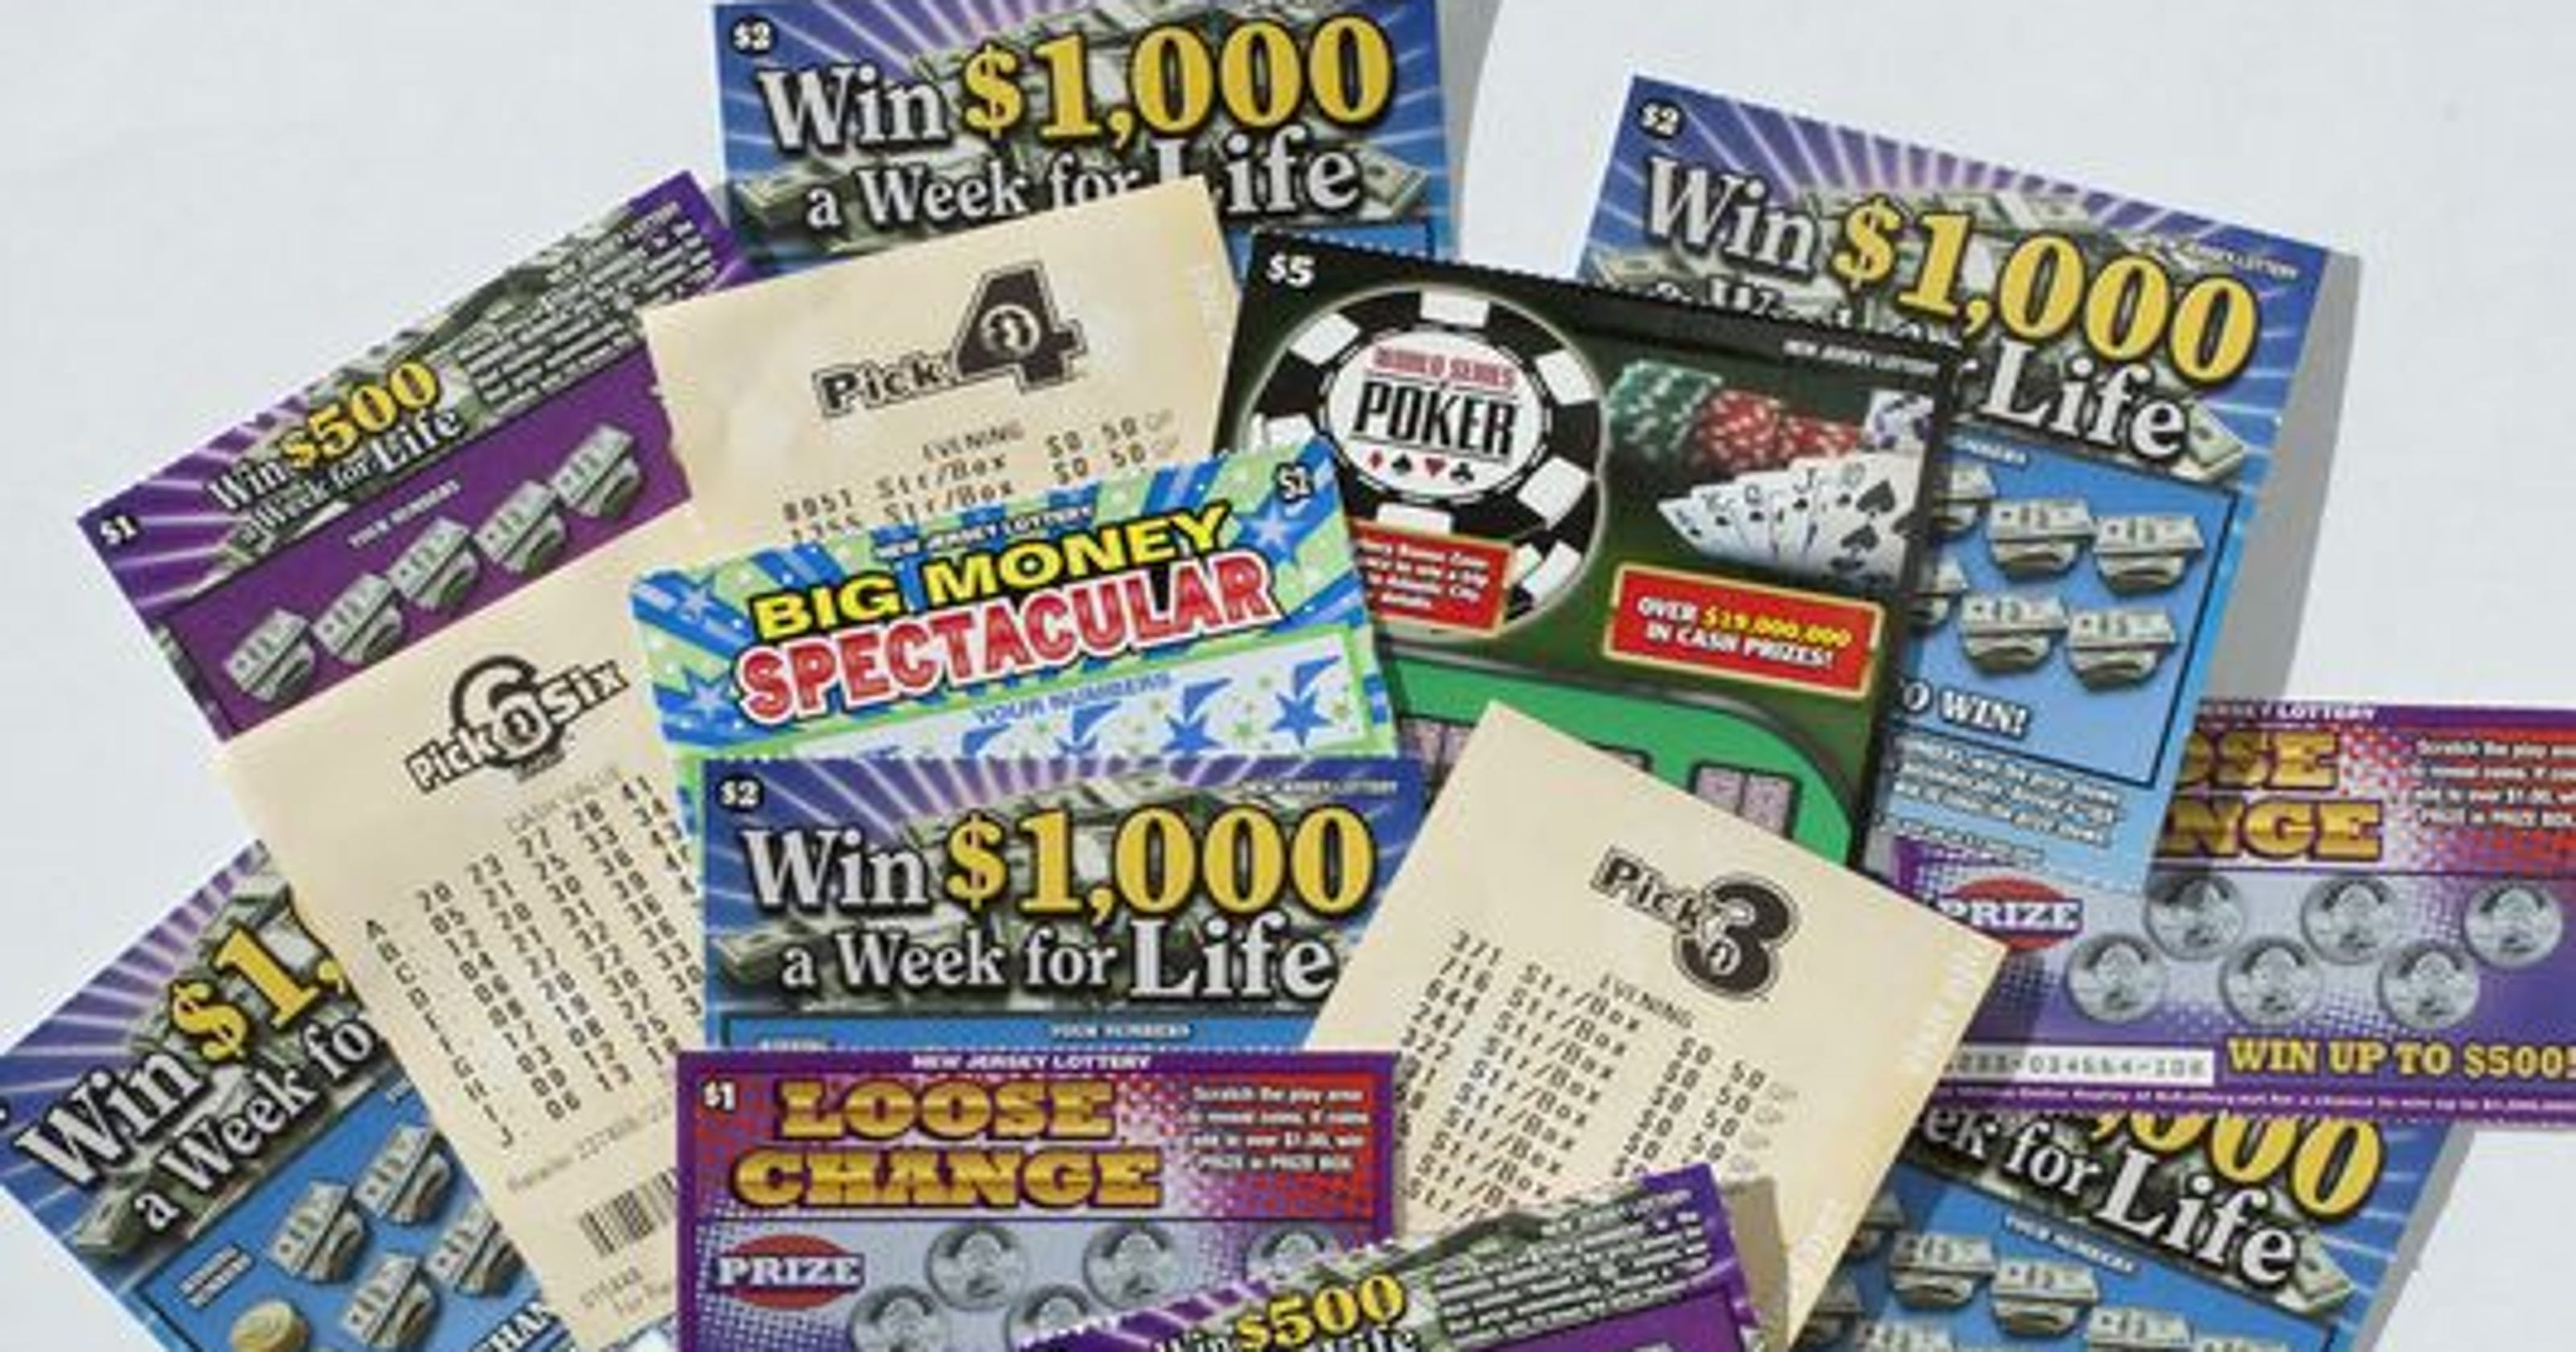 NJ Lottery must redraw a $50,000 prize for Million Dollar Replay